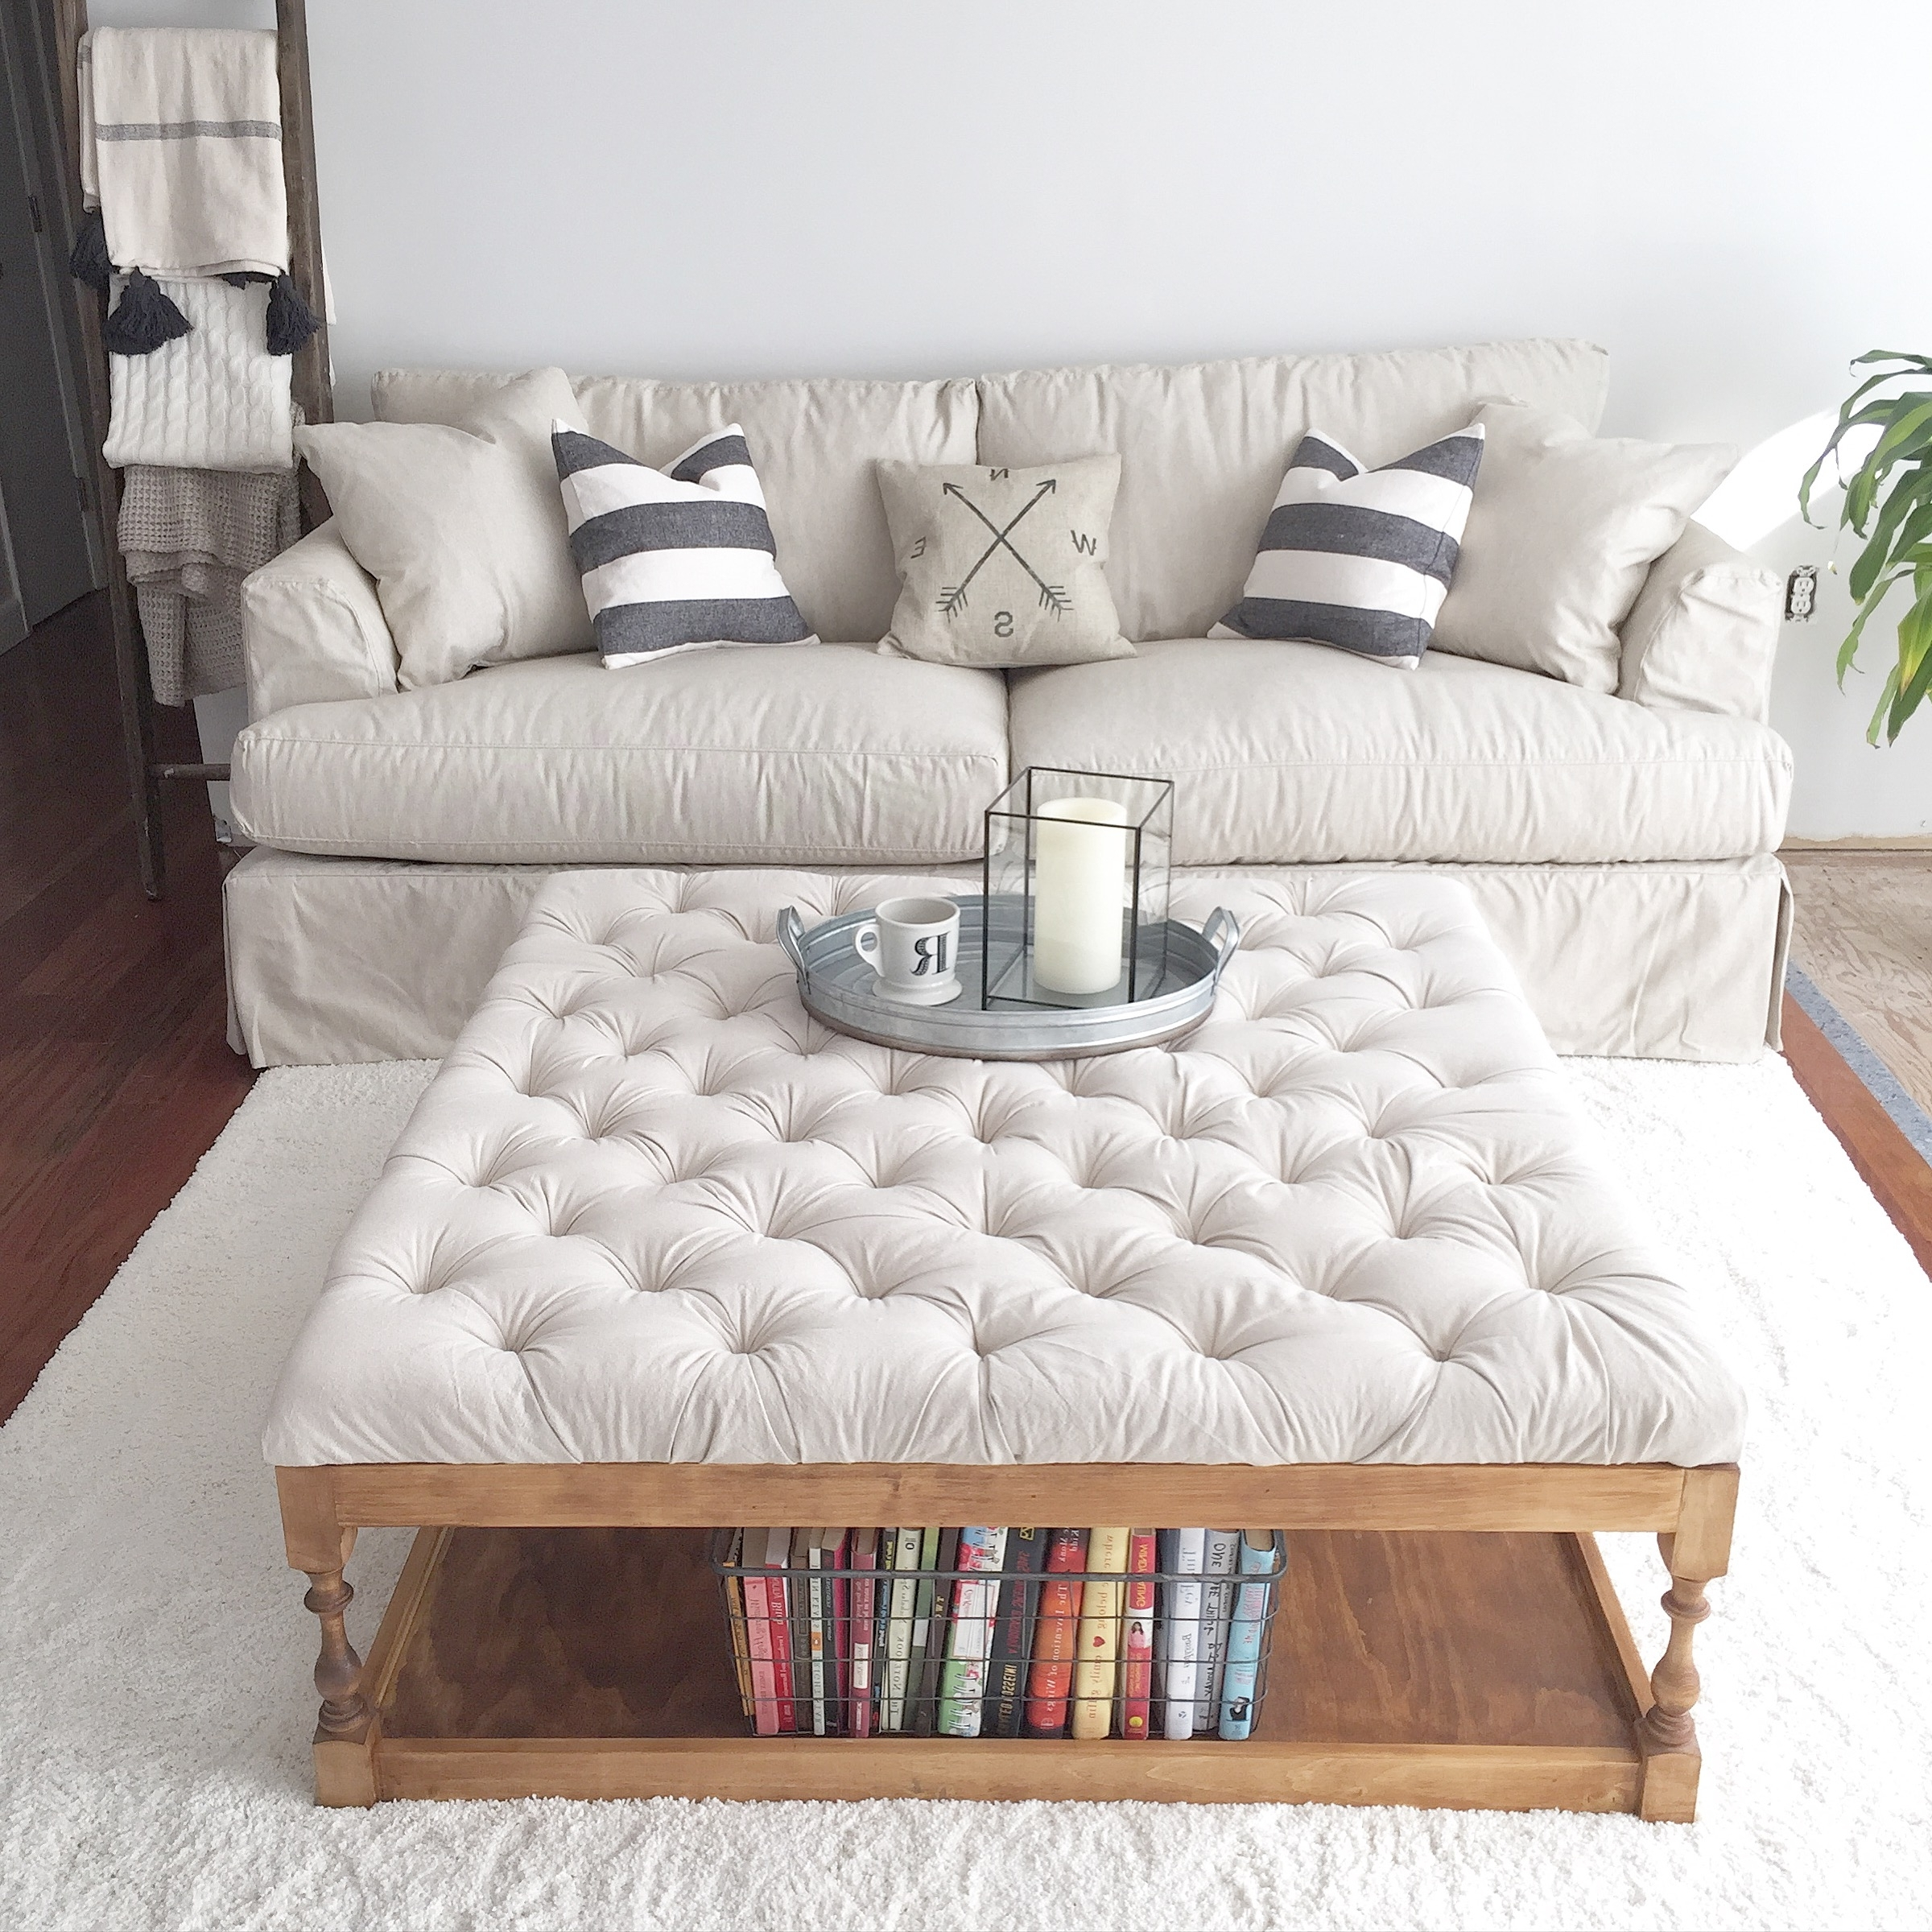 Royal Charm Button Tufted Coffee Tables For Interior (View 19 of 20)